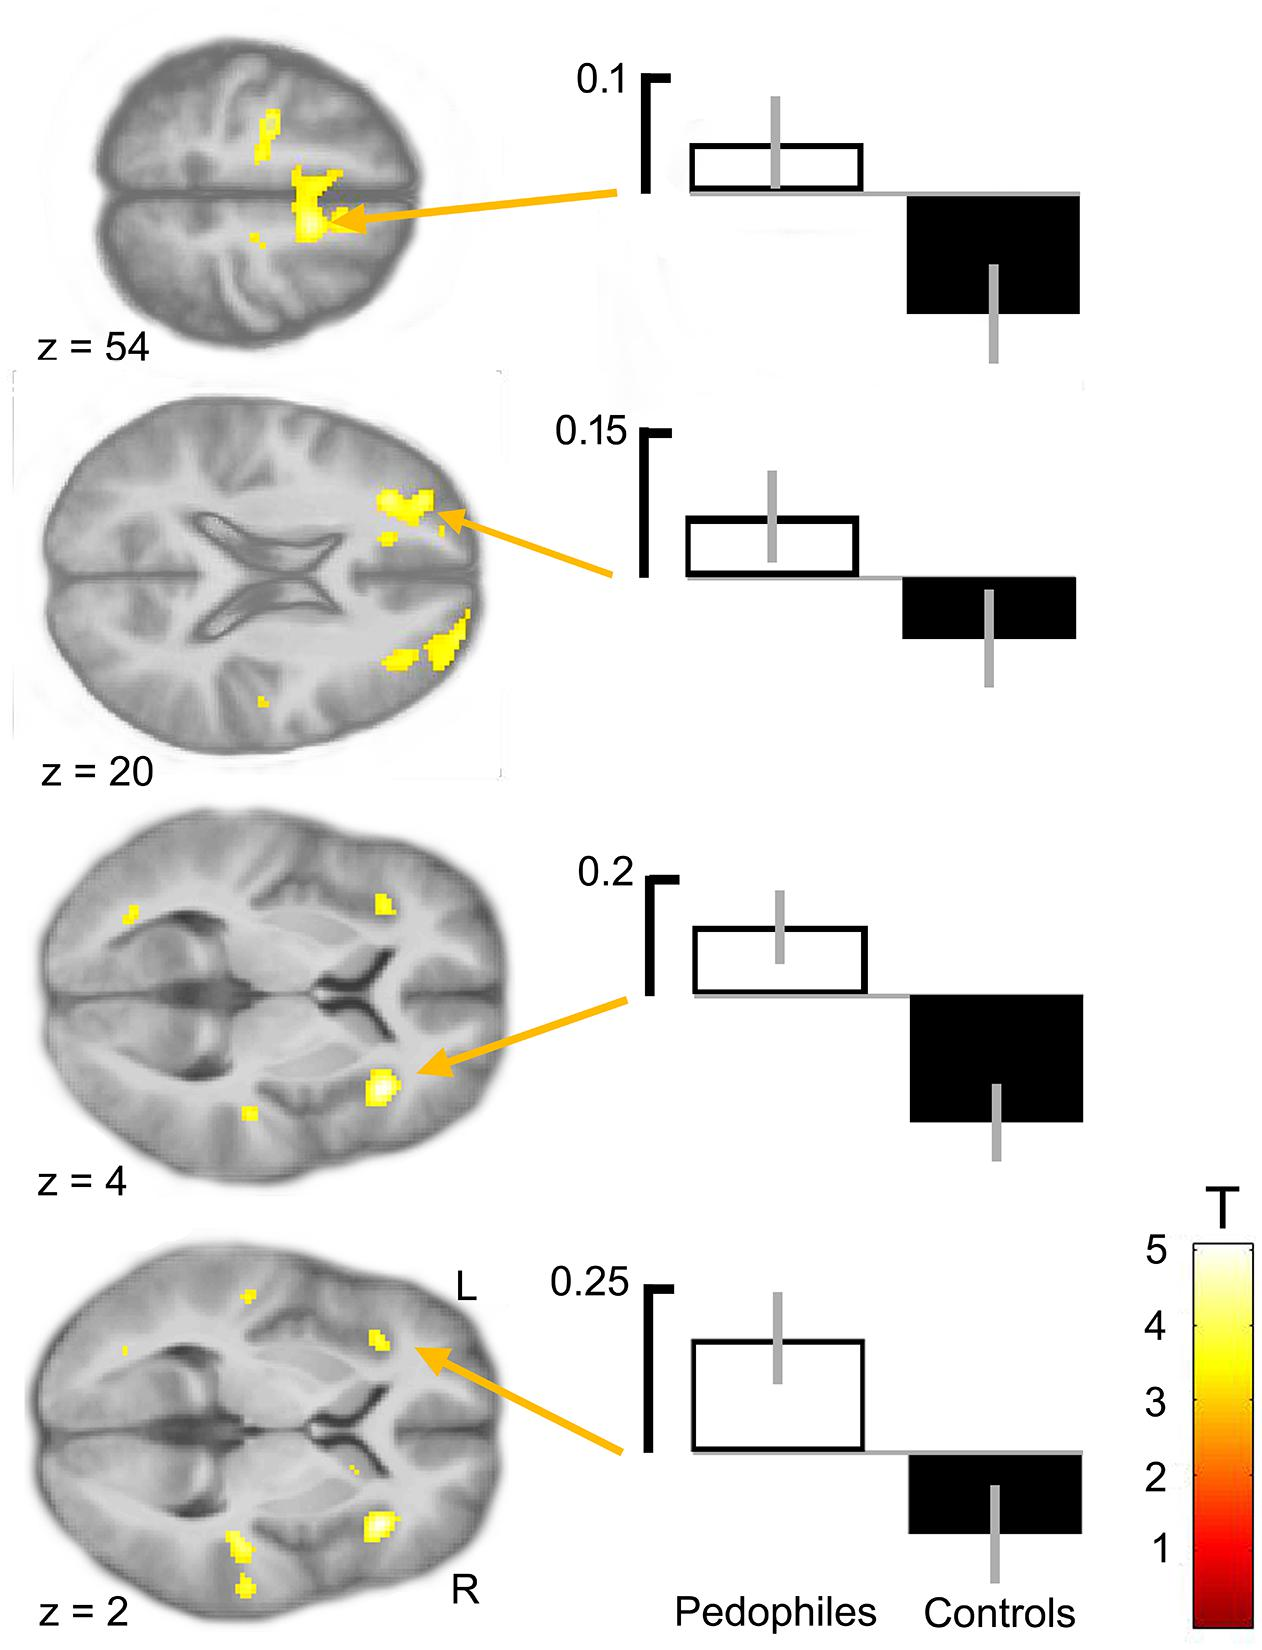 Frontiers | Decoding Pedophilia: Increased Anterior Insula Response